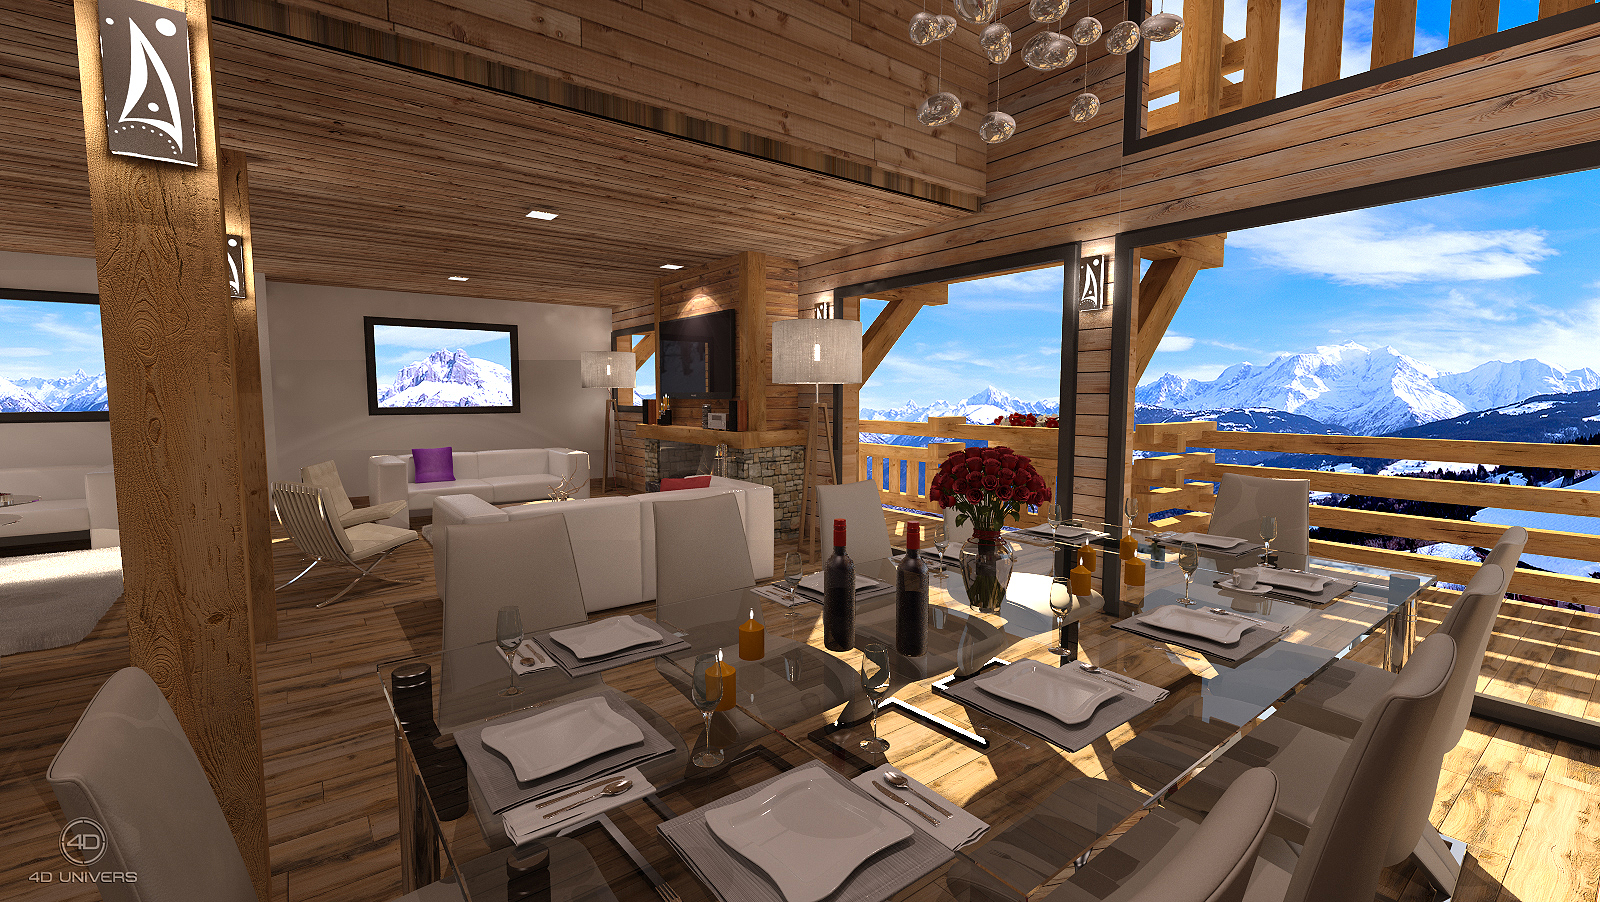 Chalet 3d suisse 4d univers studio animation 3d architecture 3d visites virtuelles 360 for Photo dinterieur de chalet de montagne